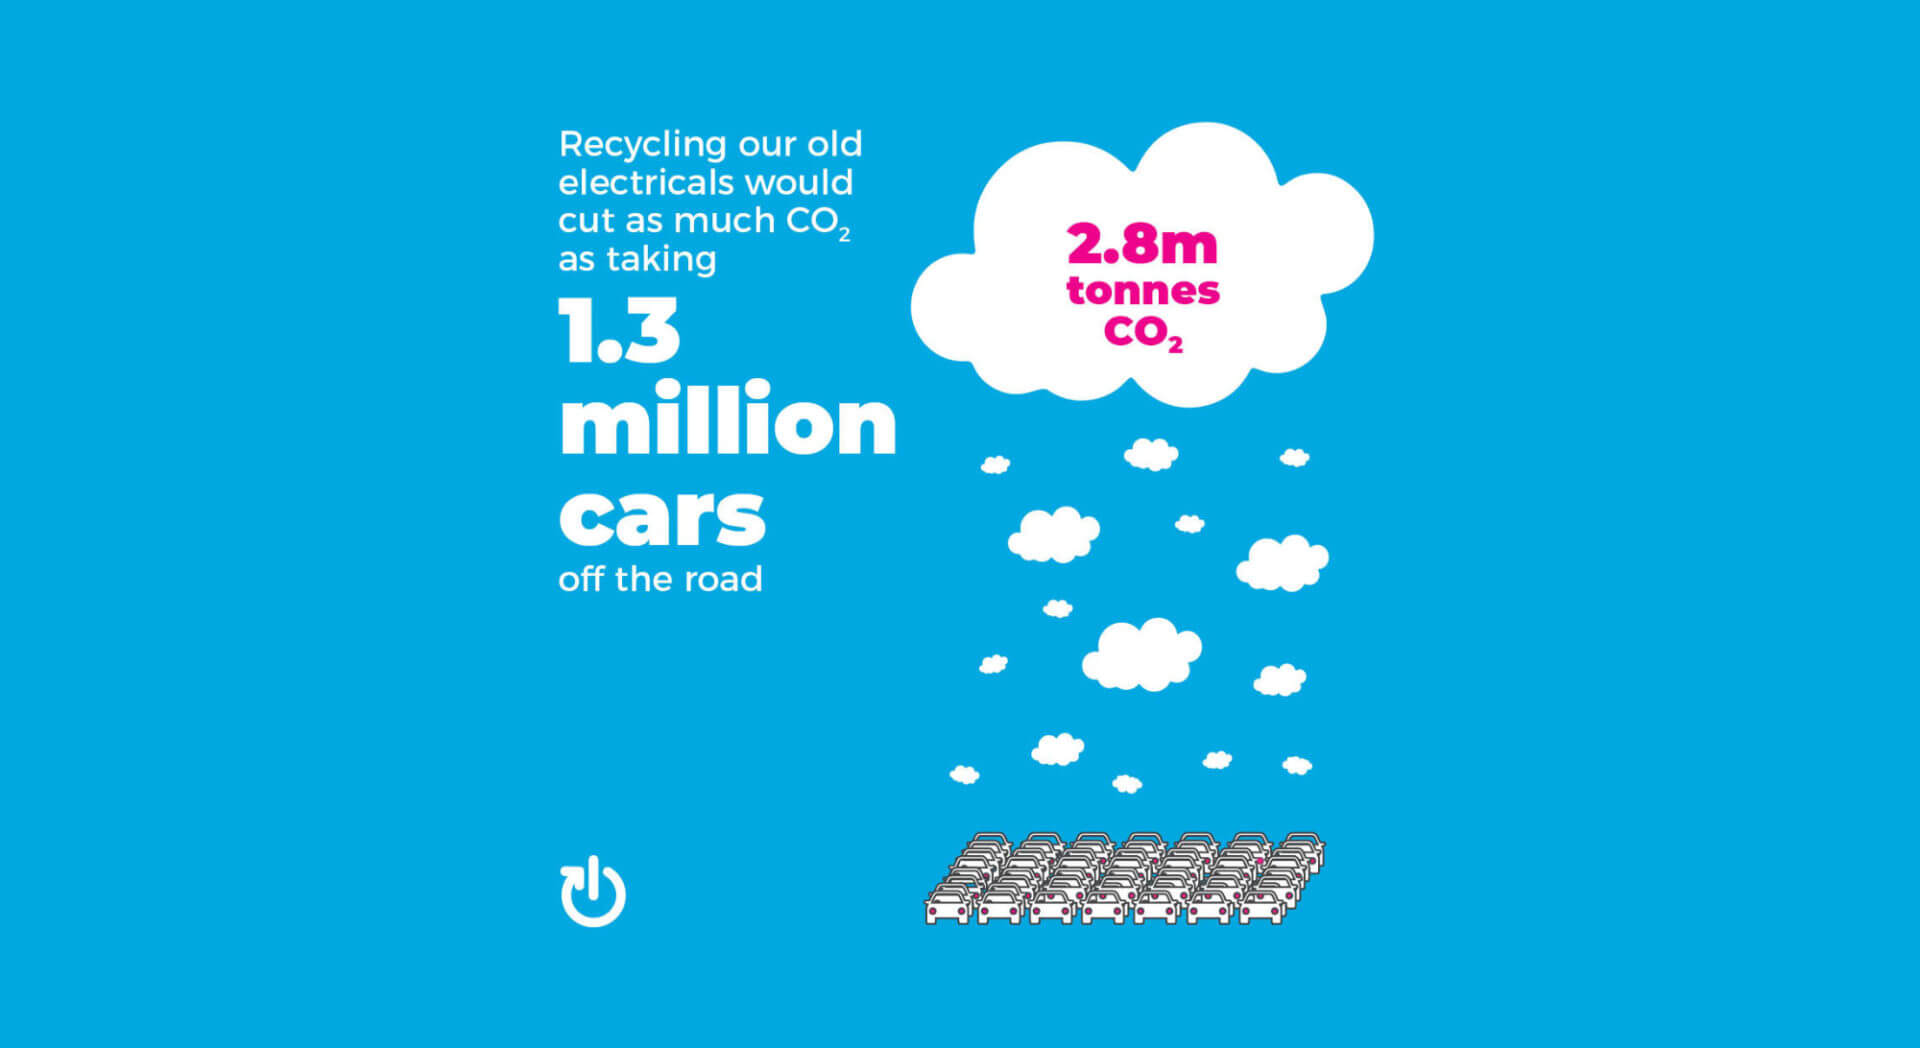 Graphic showing how the equivalent of taking 1.3 million cars off the road if we recycle